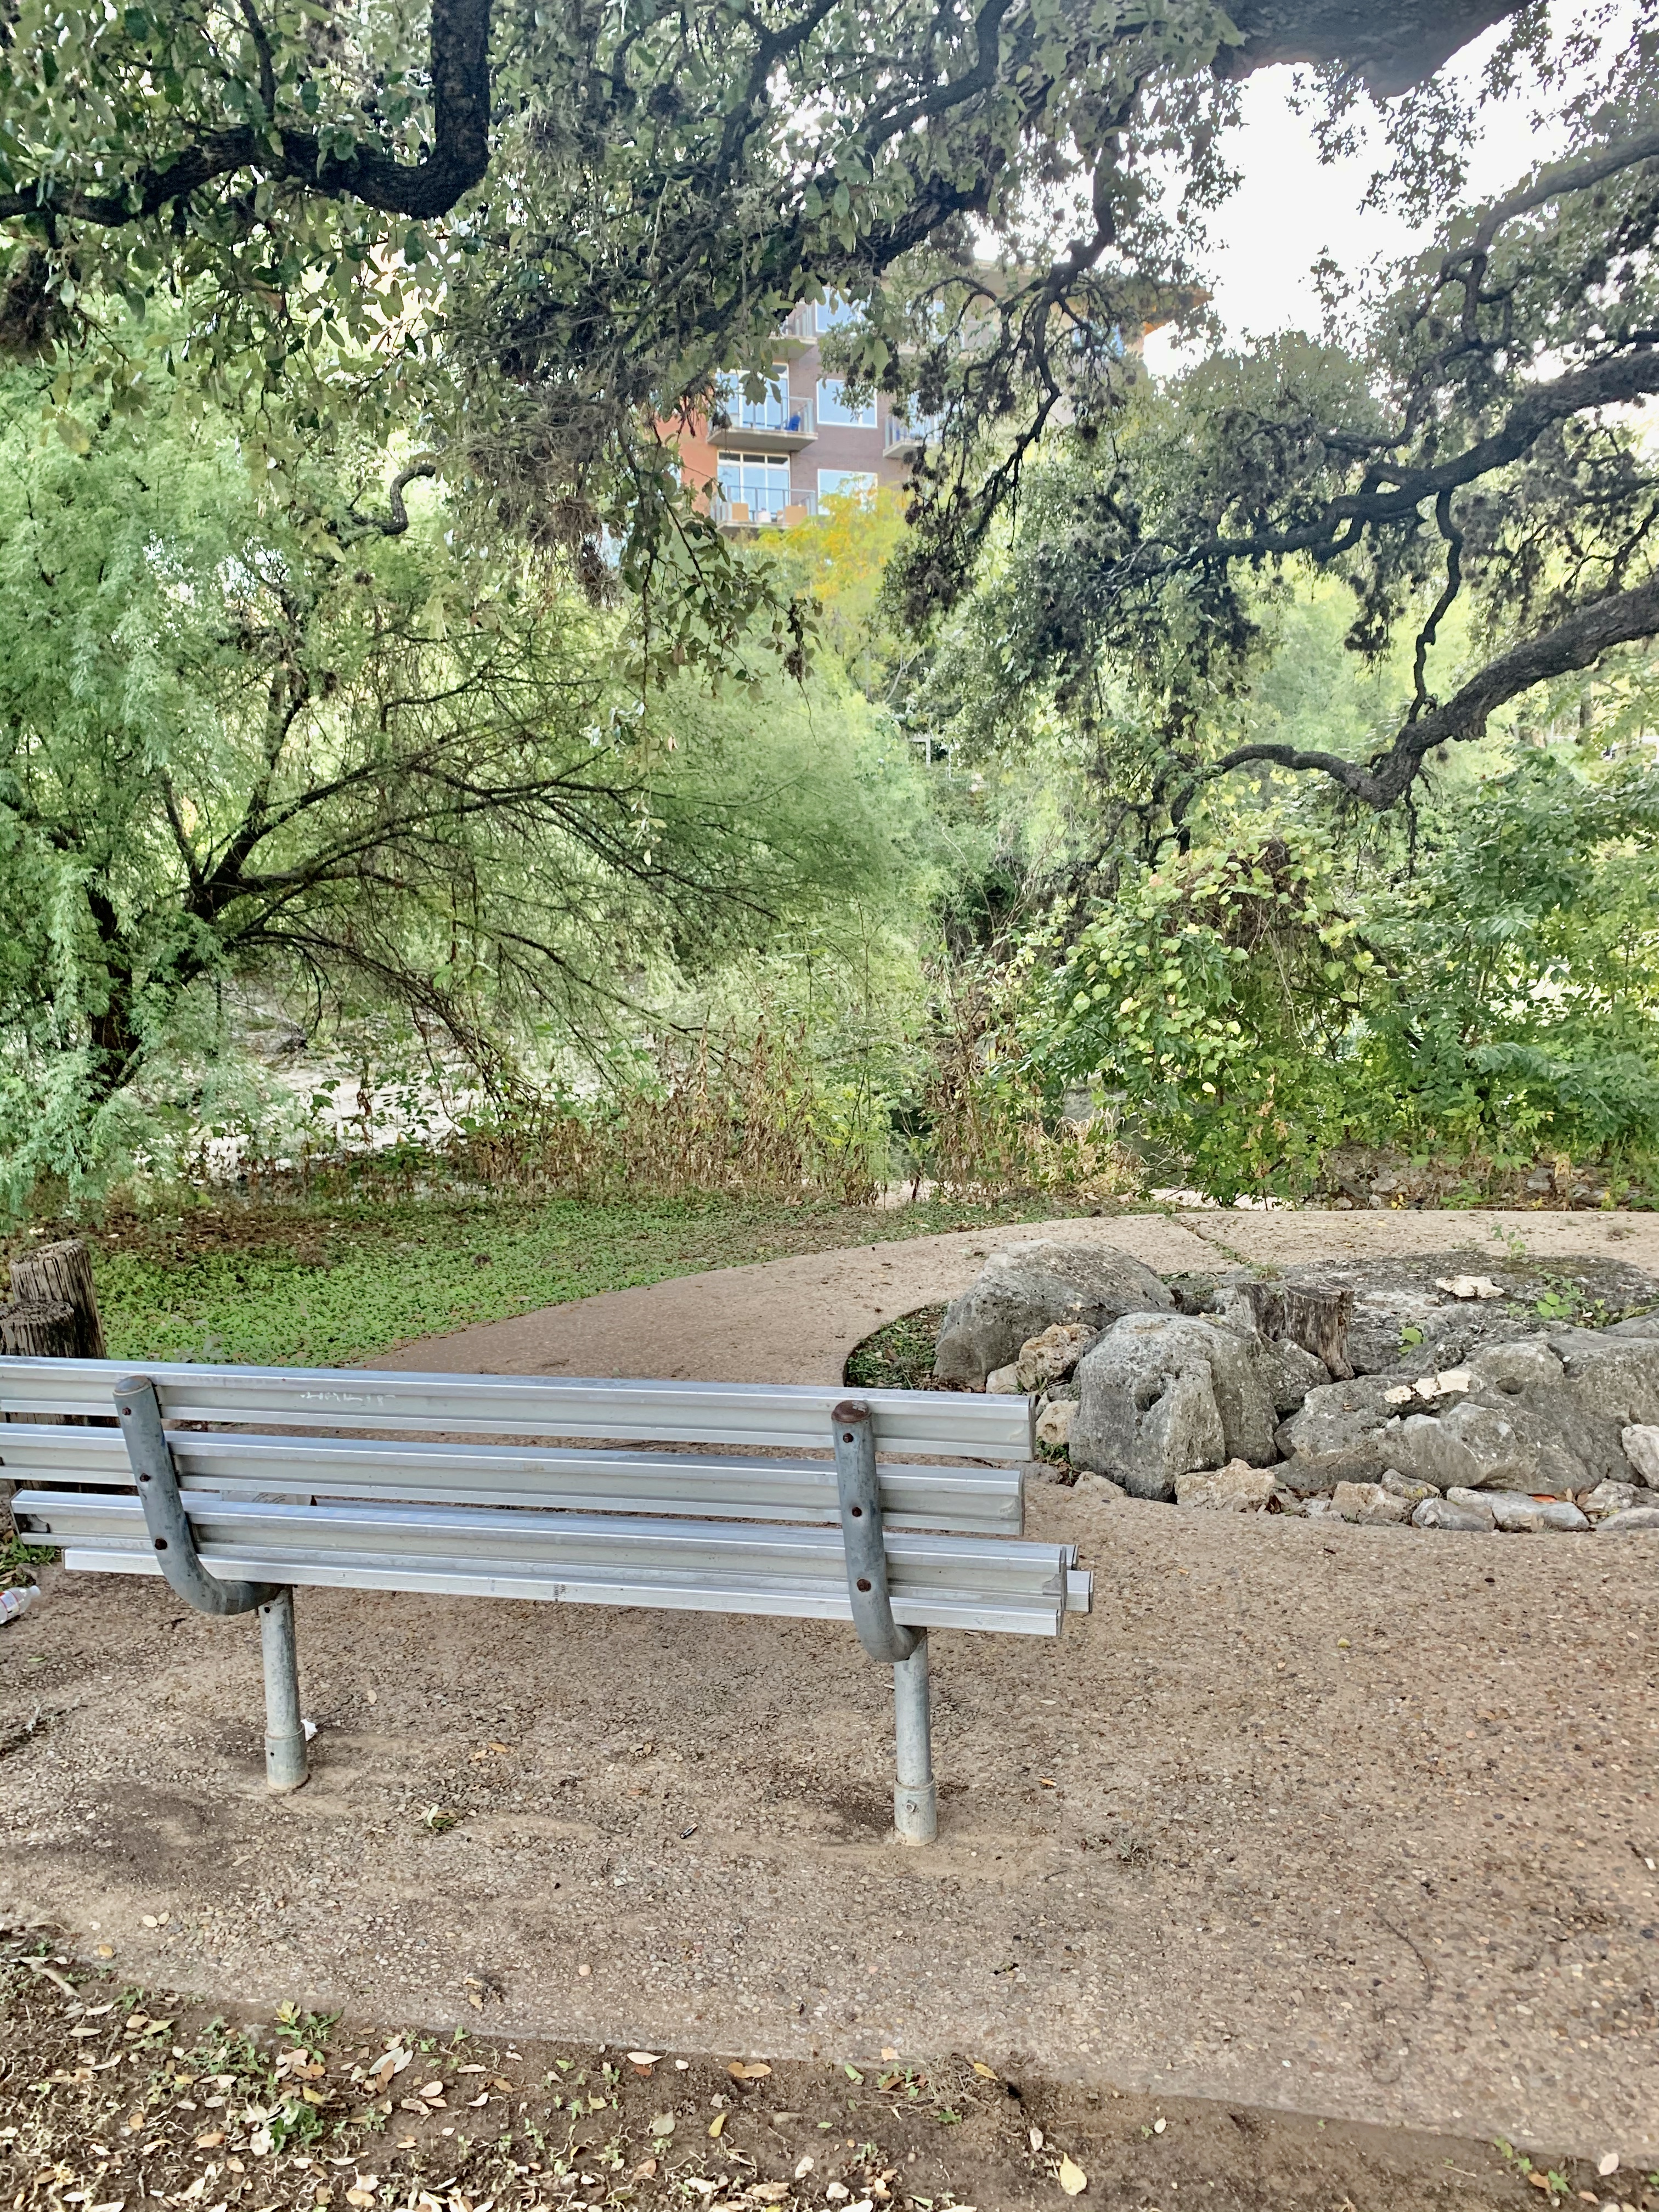 A clearing in the trail with a bench to rest on. (September 2019)